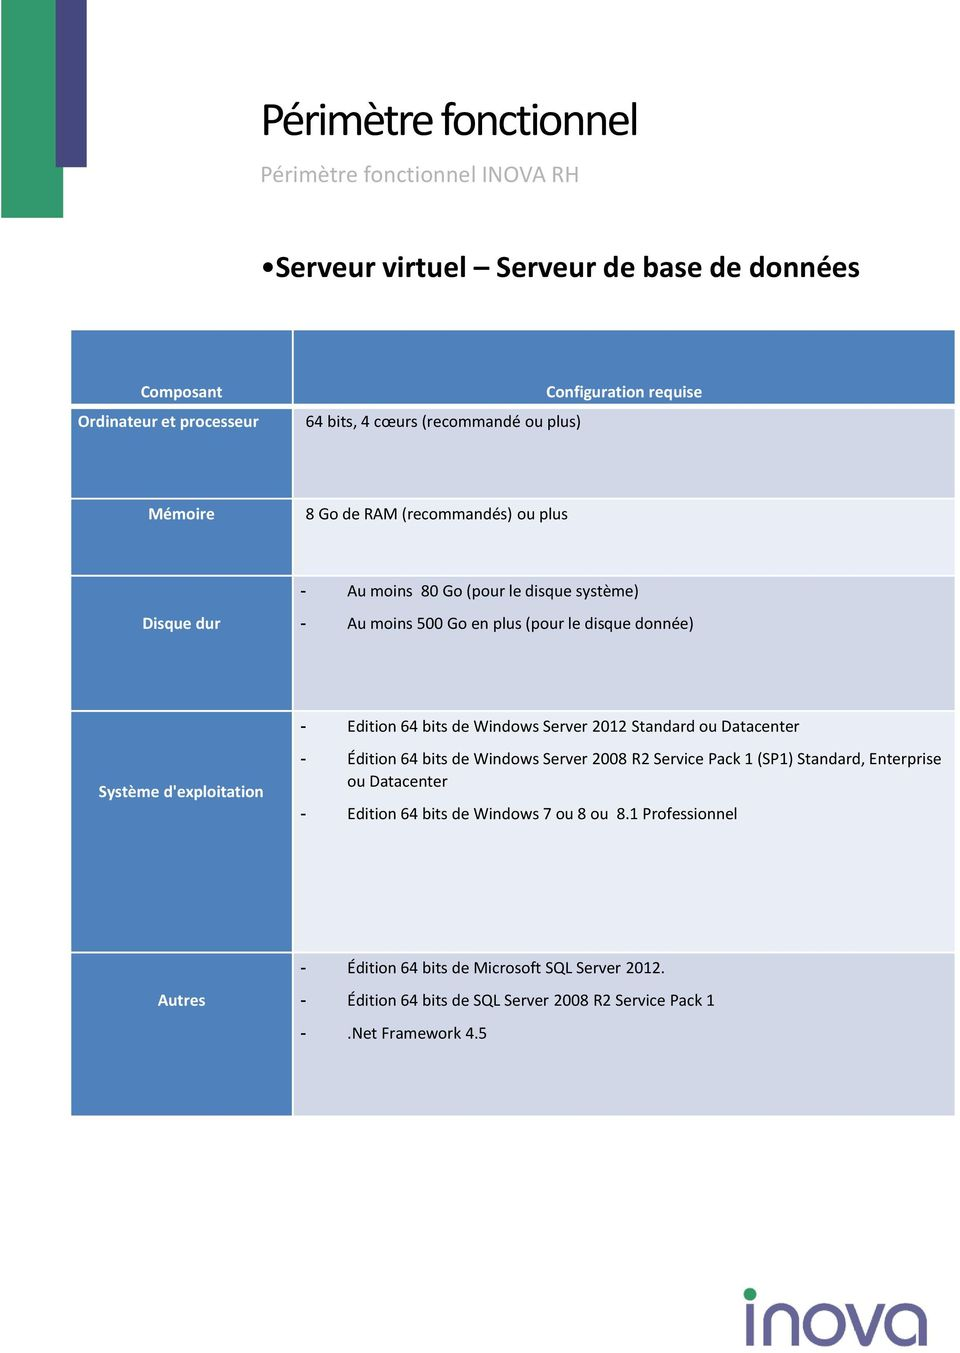 64 bits de Windows Server 2012 Standard ou Datacenter Système d'exploitation - Édition 64 bits de Windows Server 2008 R2 Service Pack 1 (SP1) Standard, Enterprise ou Datacenter